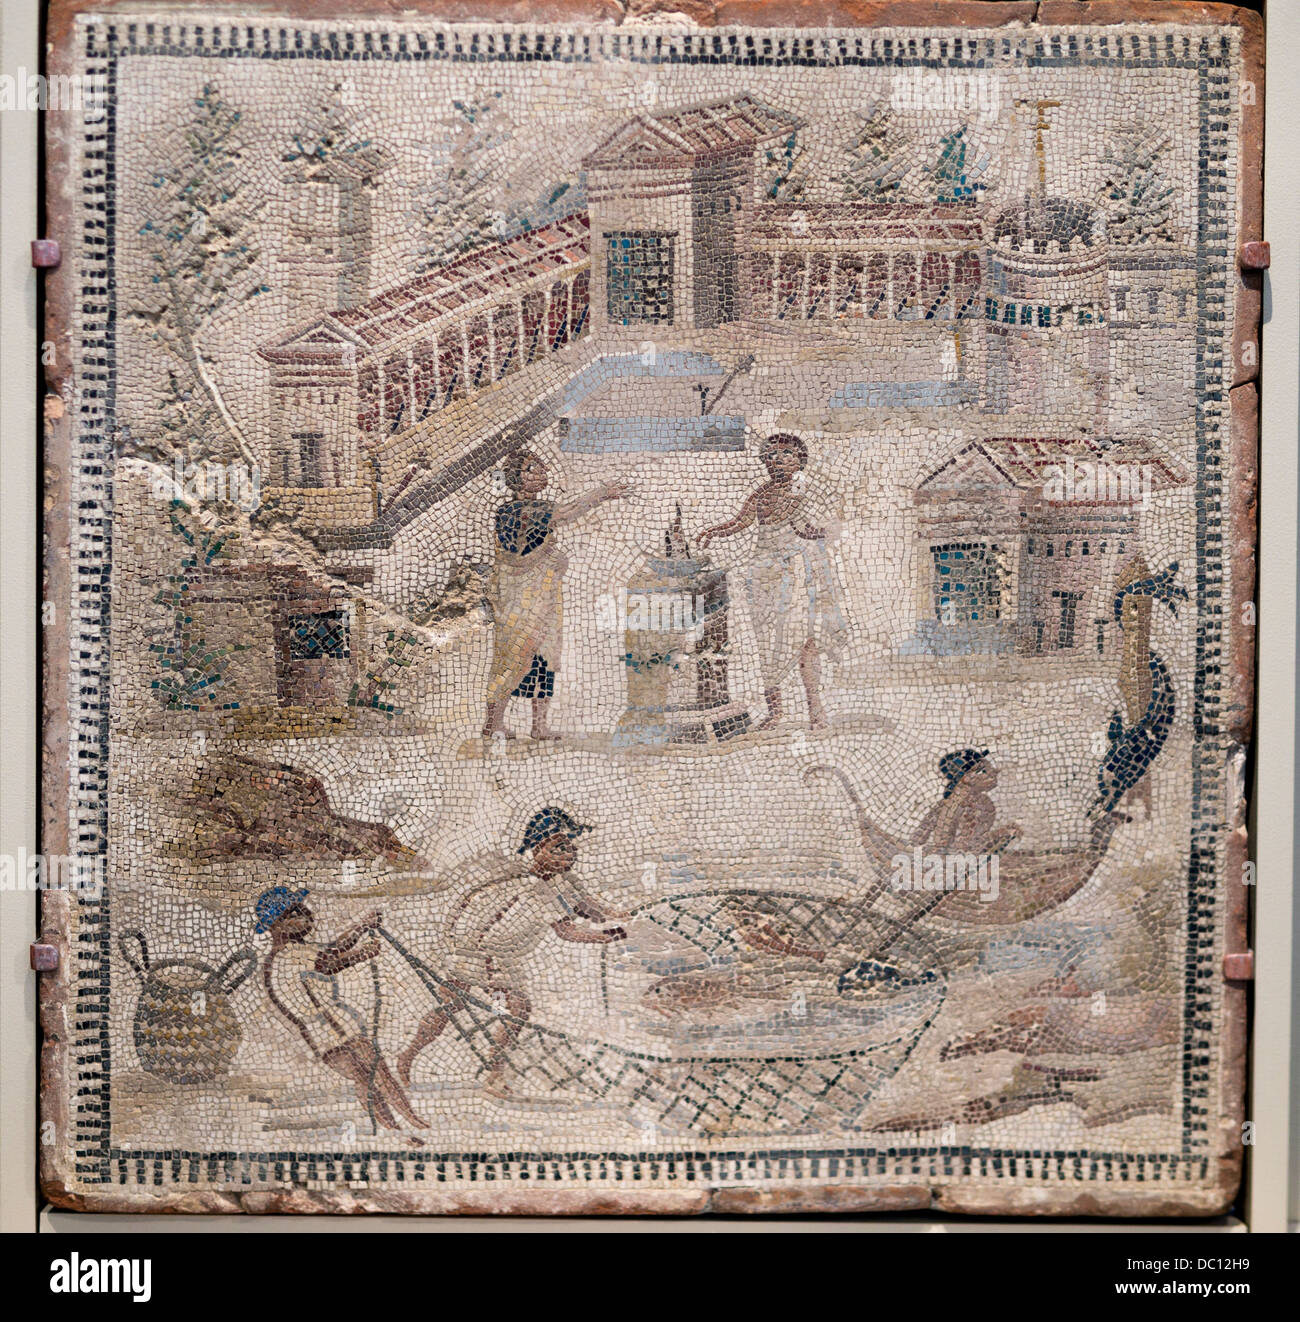 Roman Mosaic floor from Ostia, Italy. Mosaic with a man and a woman sacrificing in a seaside landscape. - Stock Image